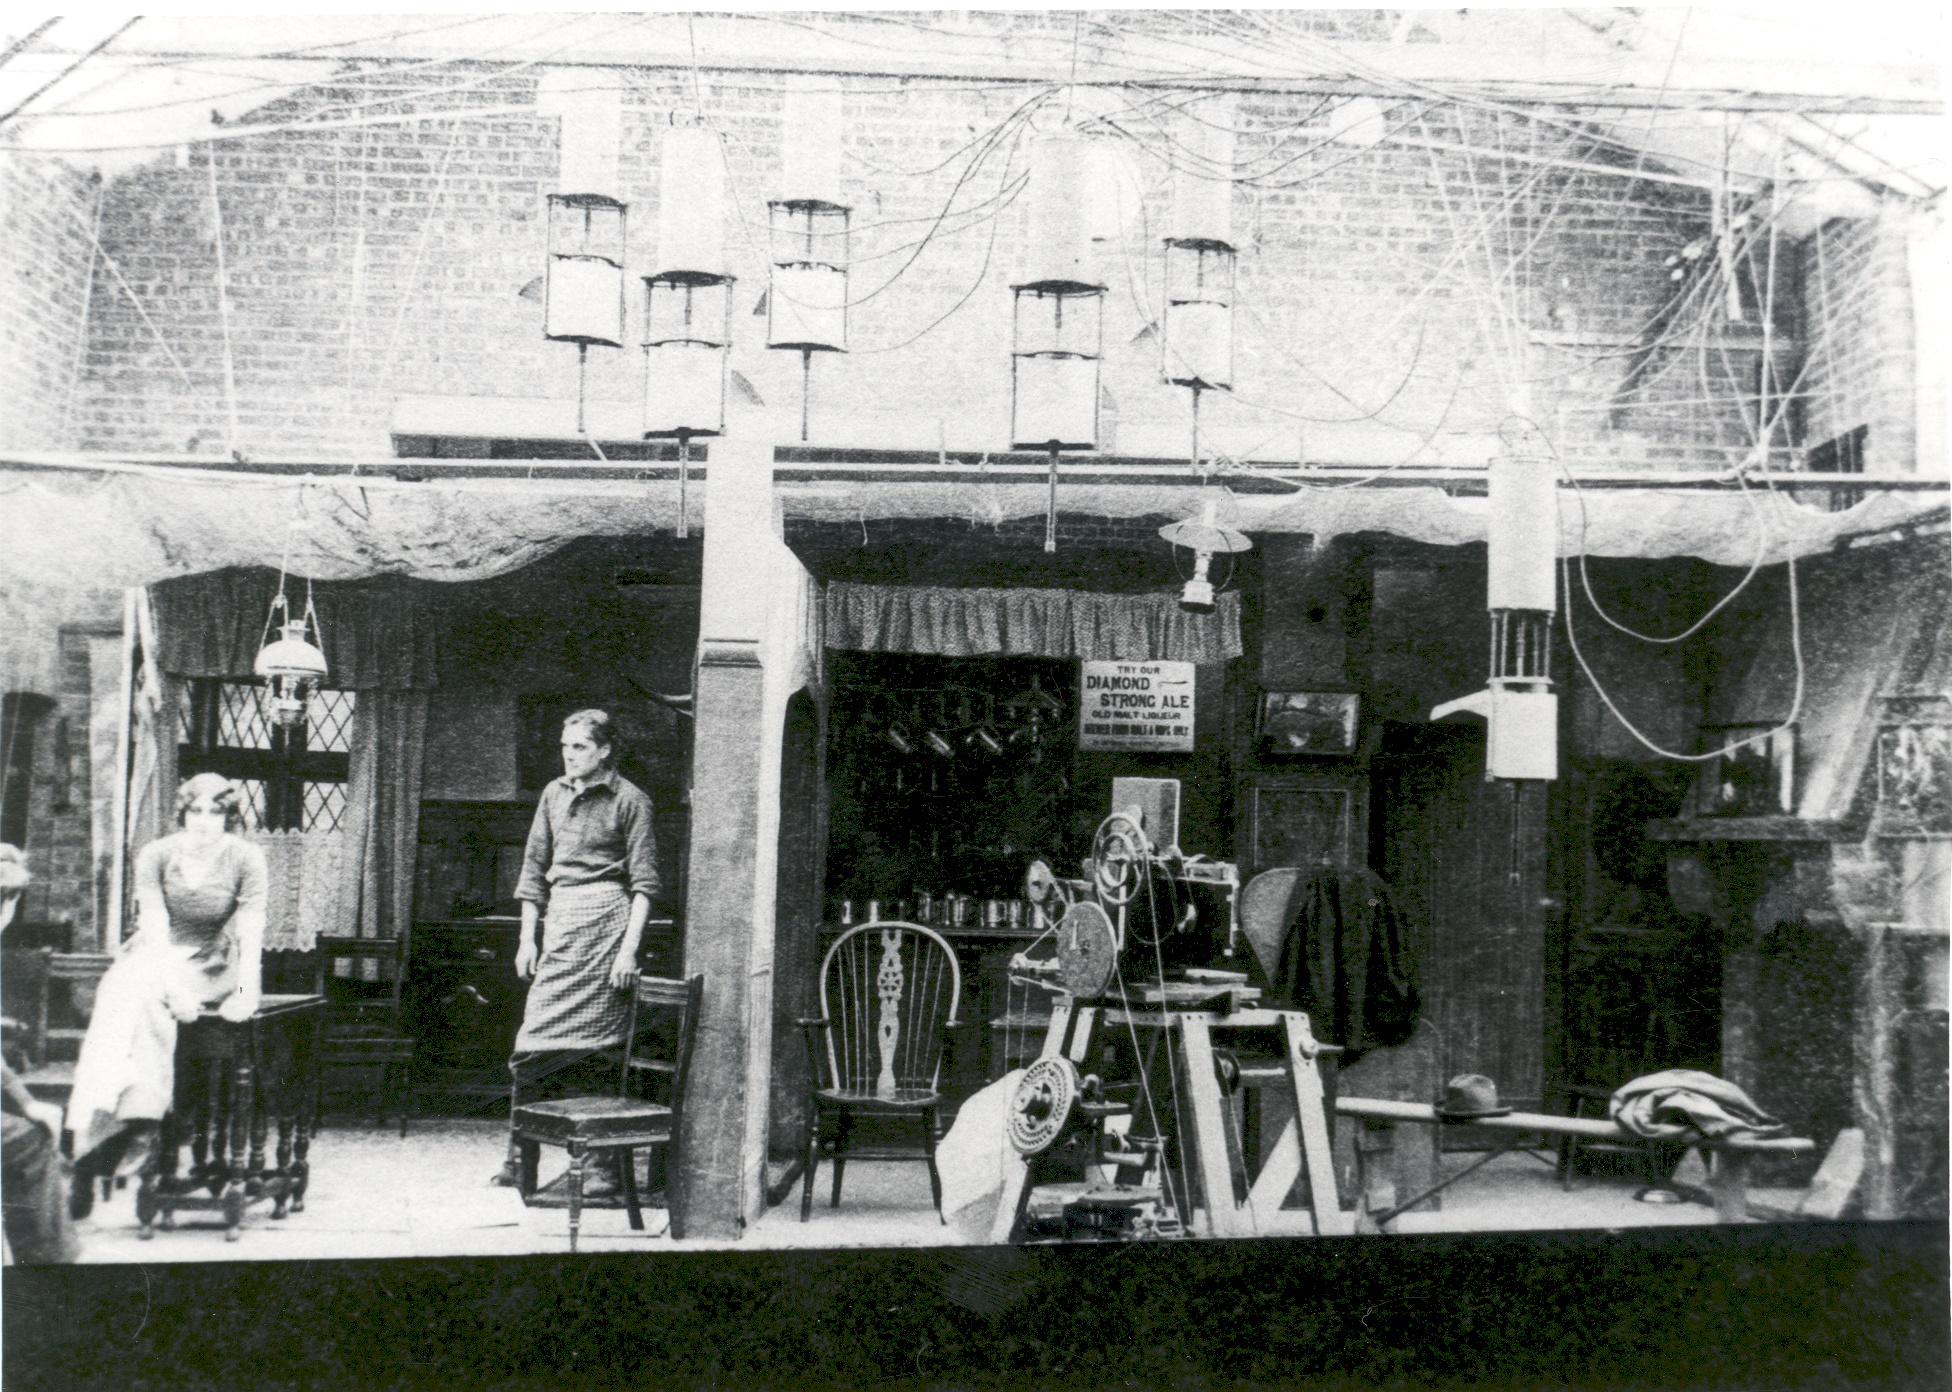 A film set at the Hepworth Studios comprising two rooms with a scene being enacted in the room on the left. The other appears to be a bar in a public house. Studio lighting etc visible in the foreground, 1912.